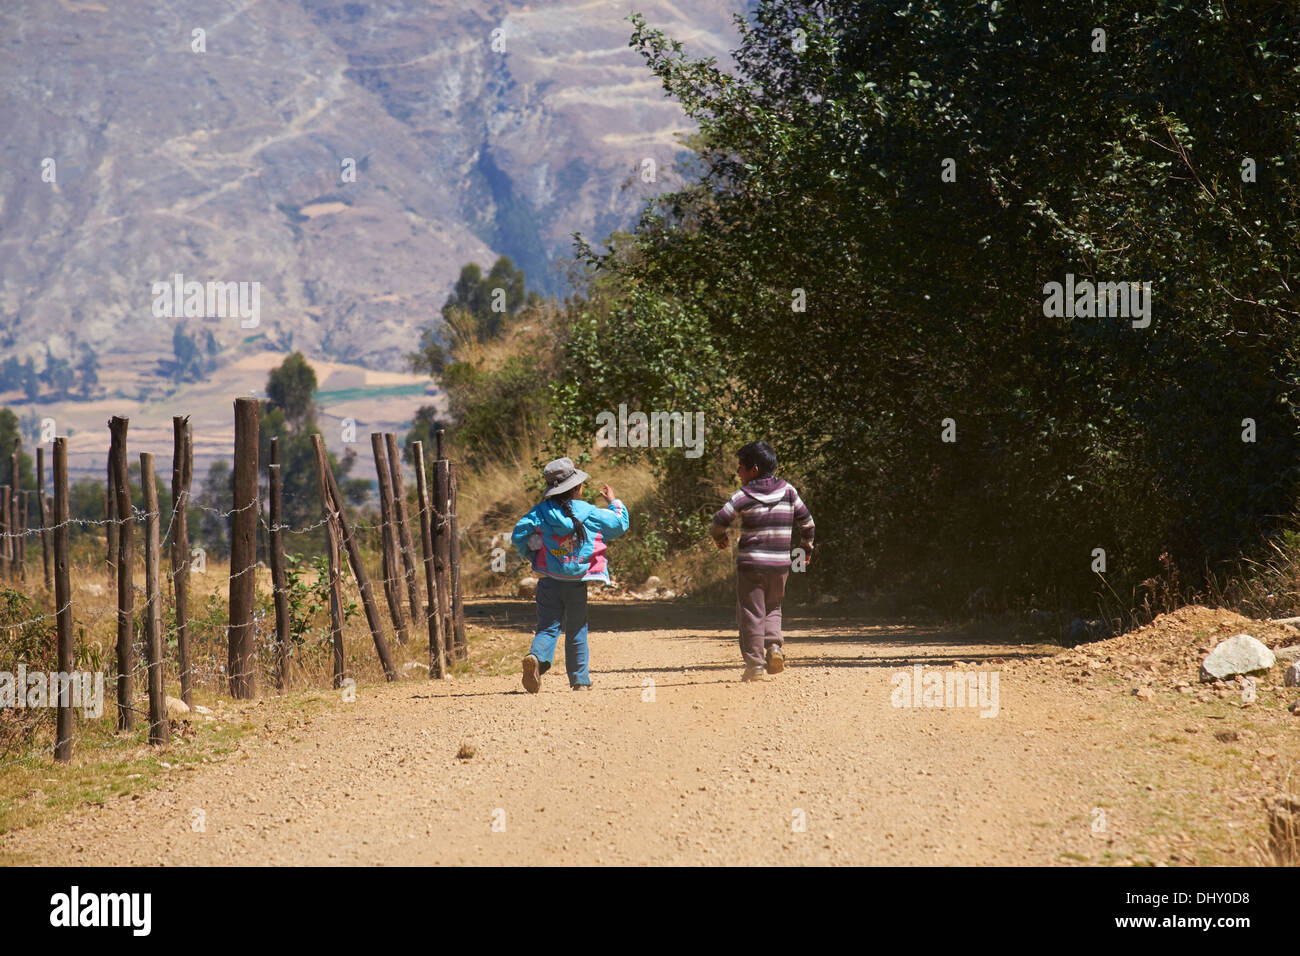 Young children playing,skipping down the road in the Peruvian Andes. - Stock Image